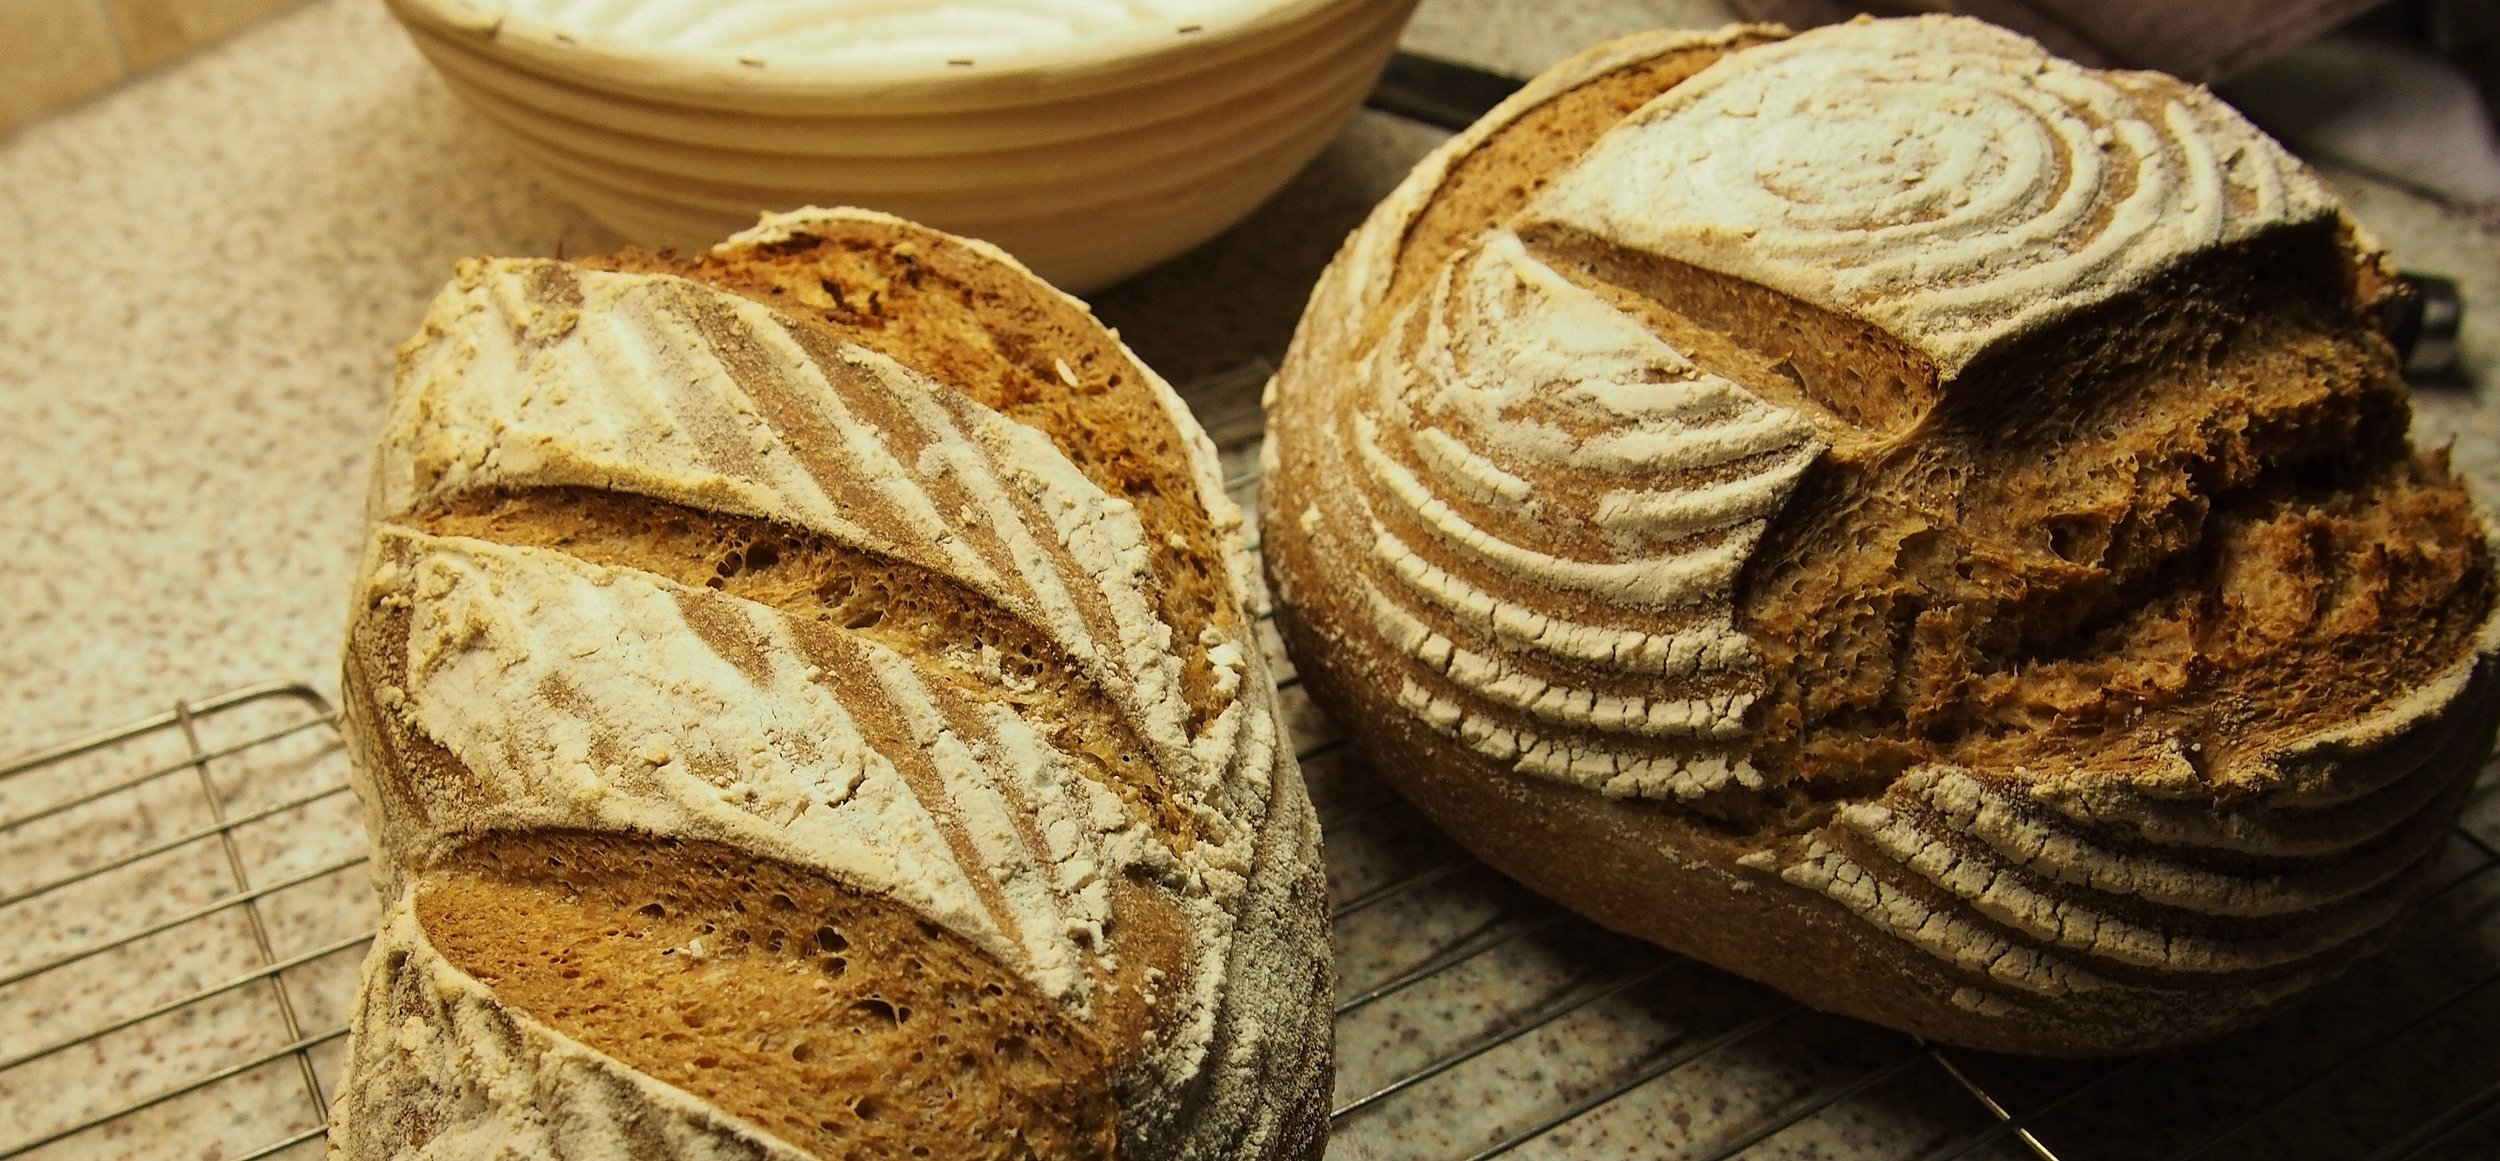 Fresh homebaked bread every day at Church house